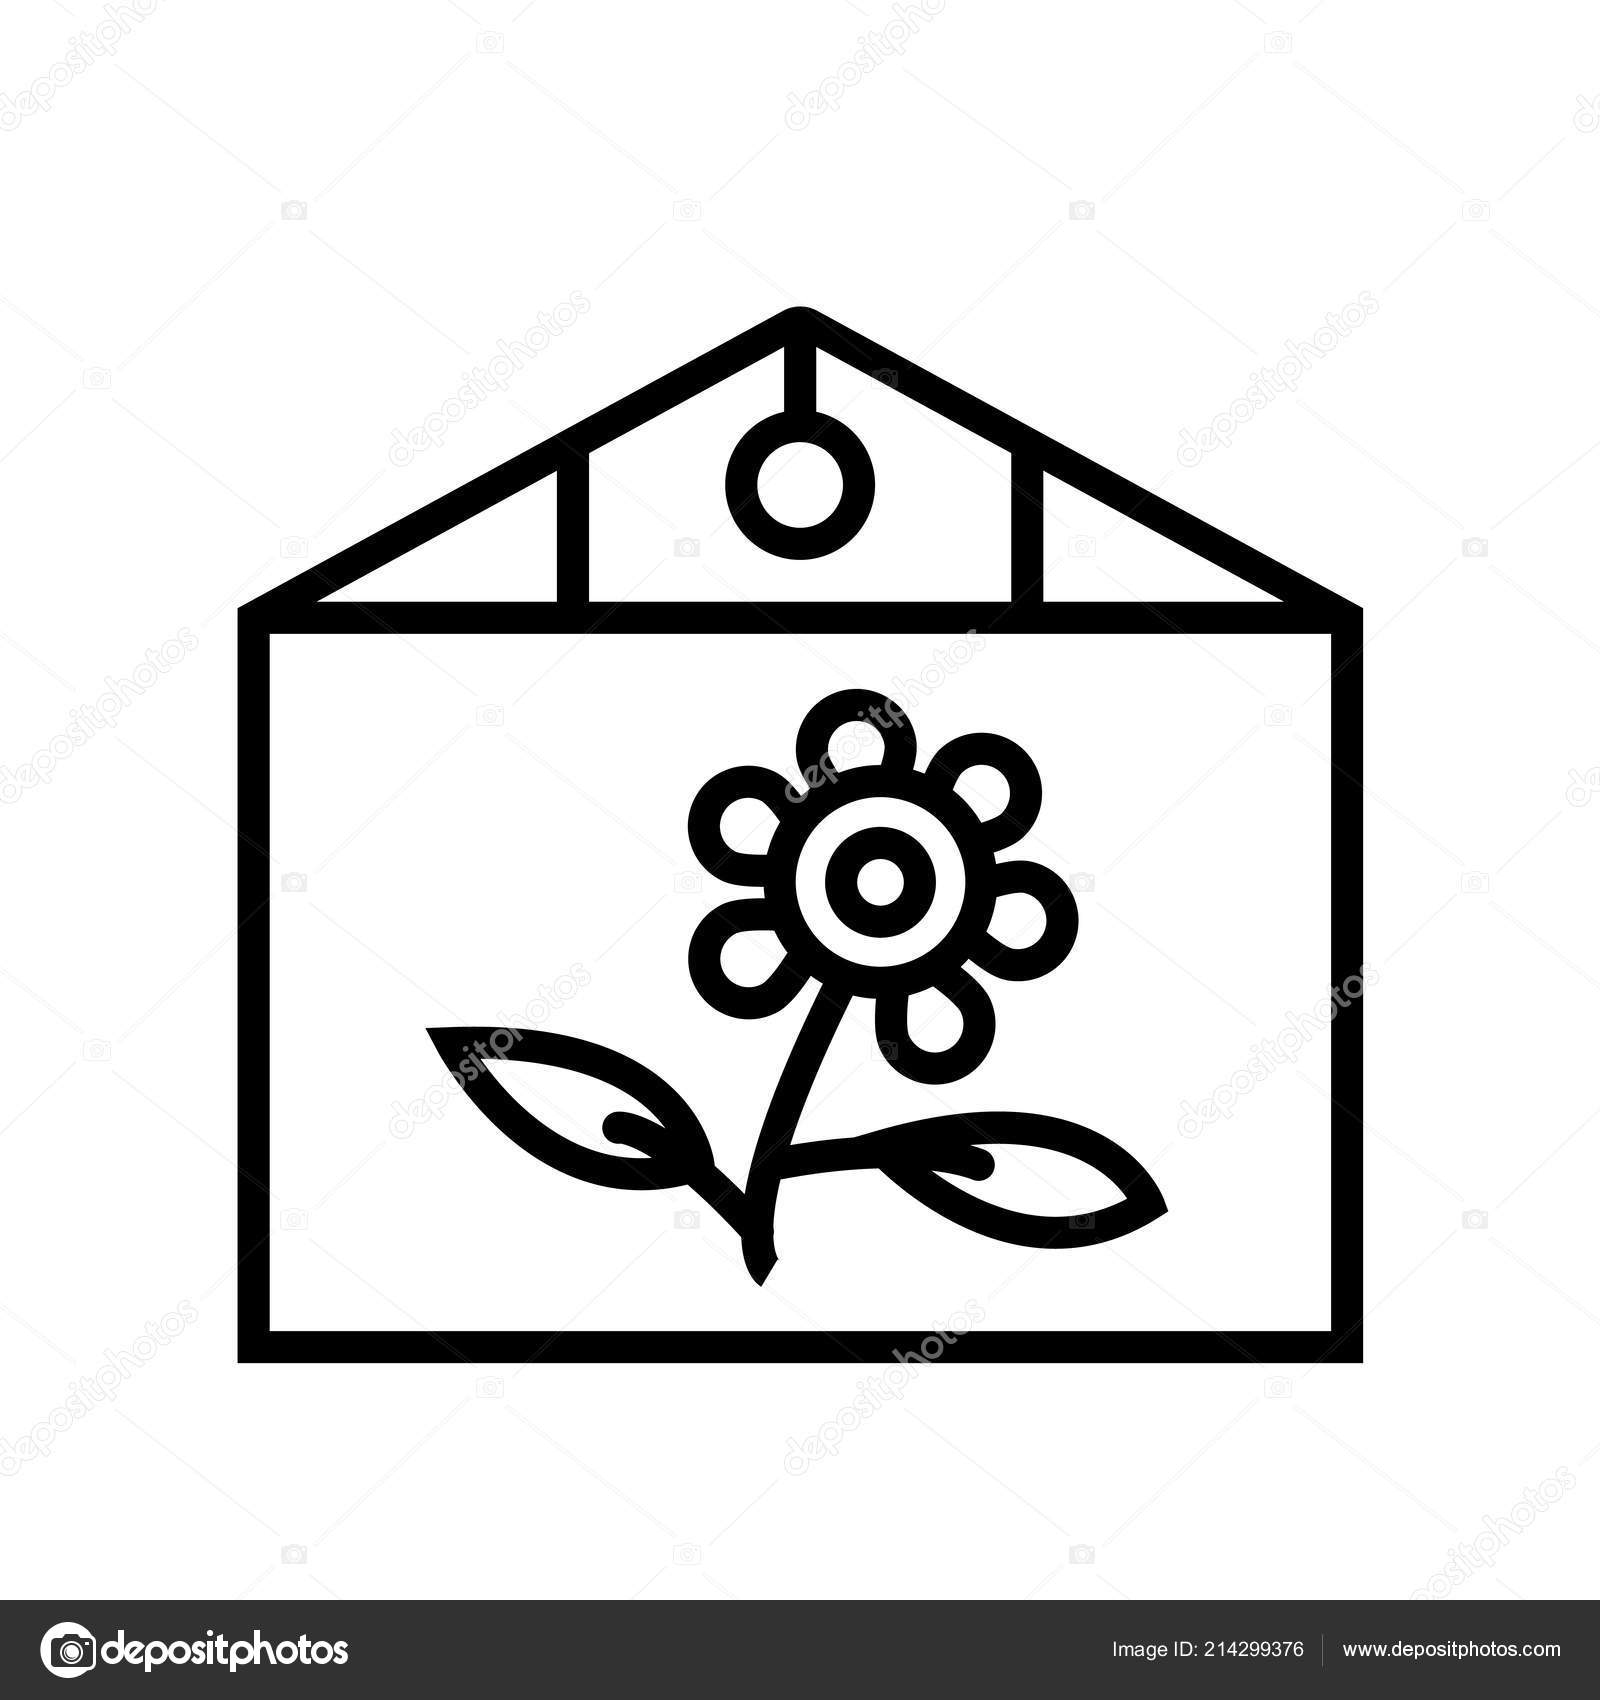 greenhouse icon vector isolated on white background greenhouse Ja Symbol greenhouse icon vector isolated on white background greenhouse transparent sign line or linear sign element design in outline style vector by